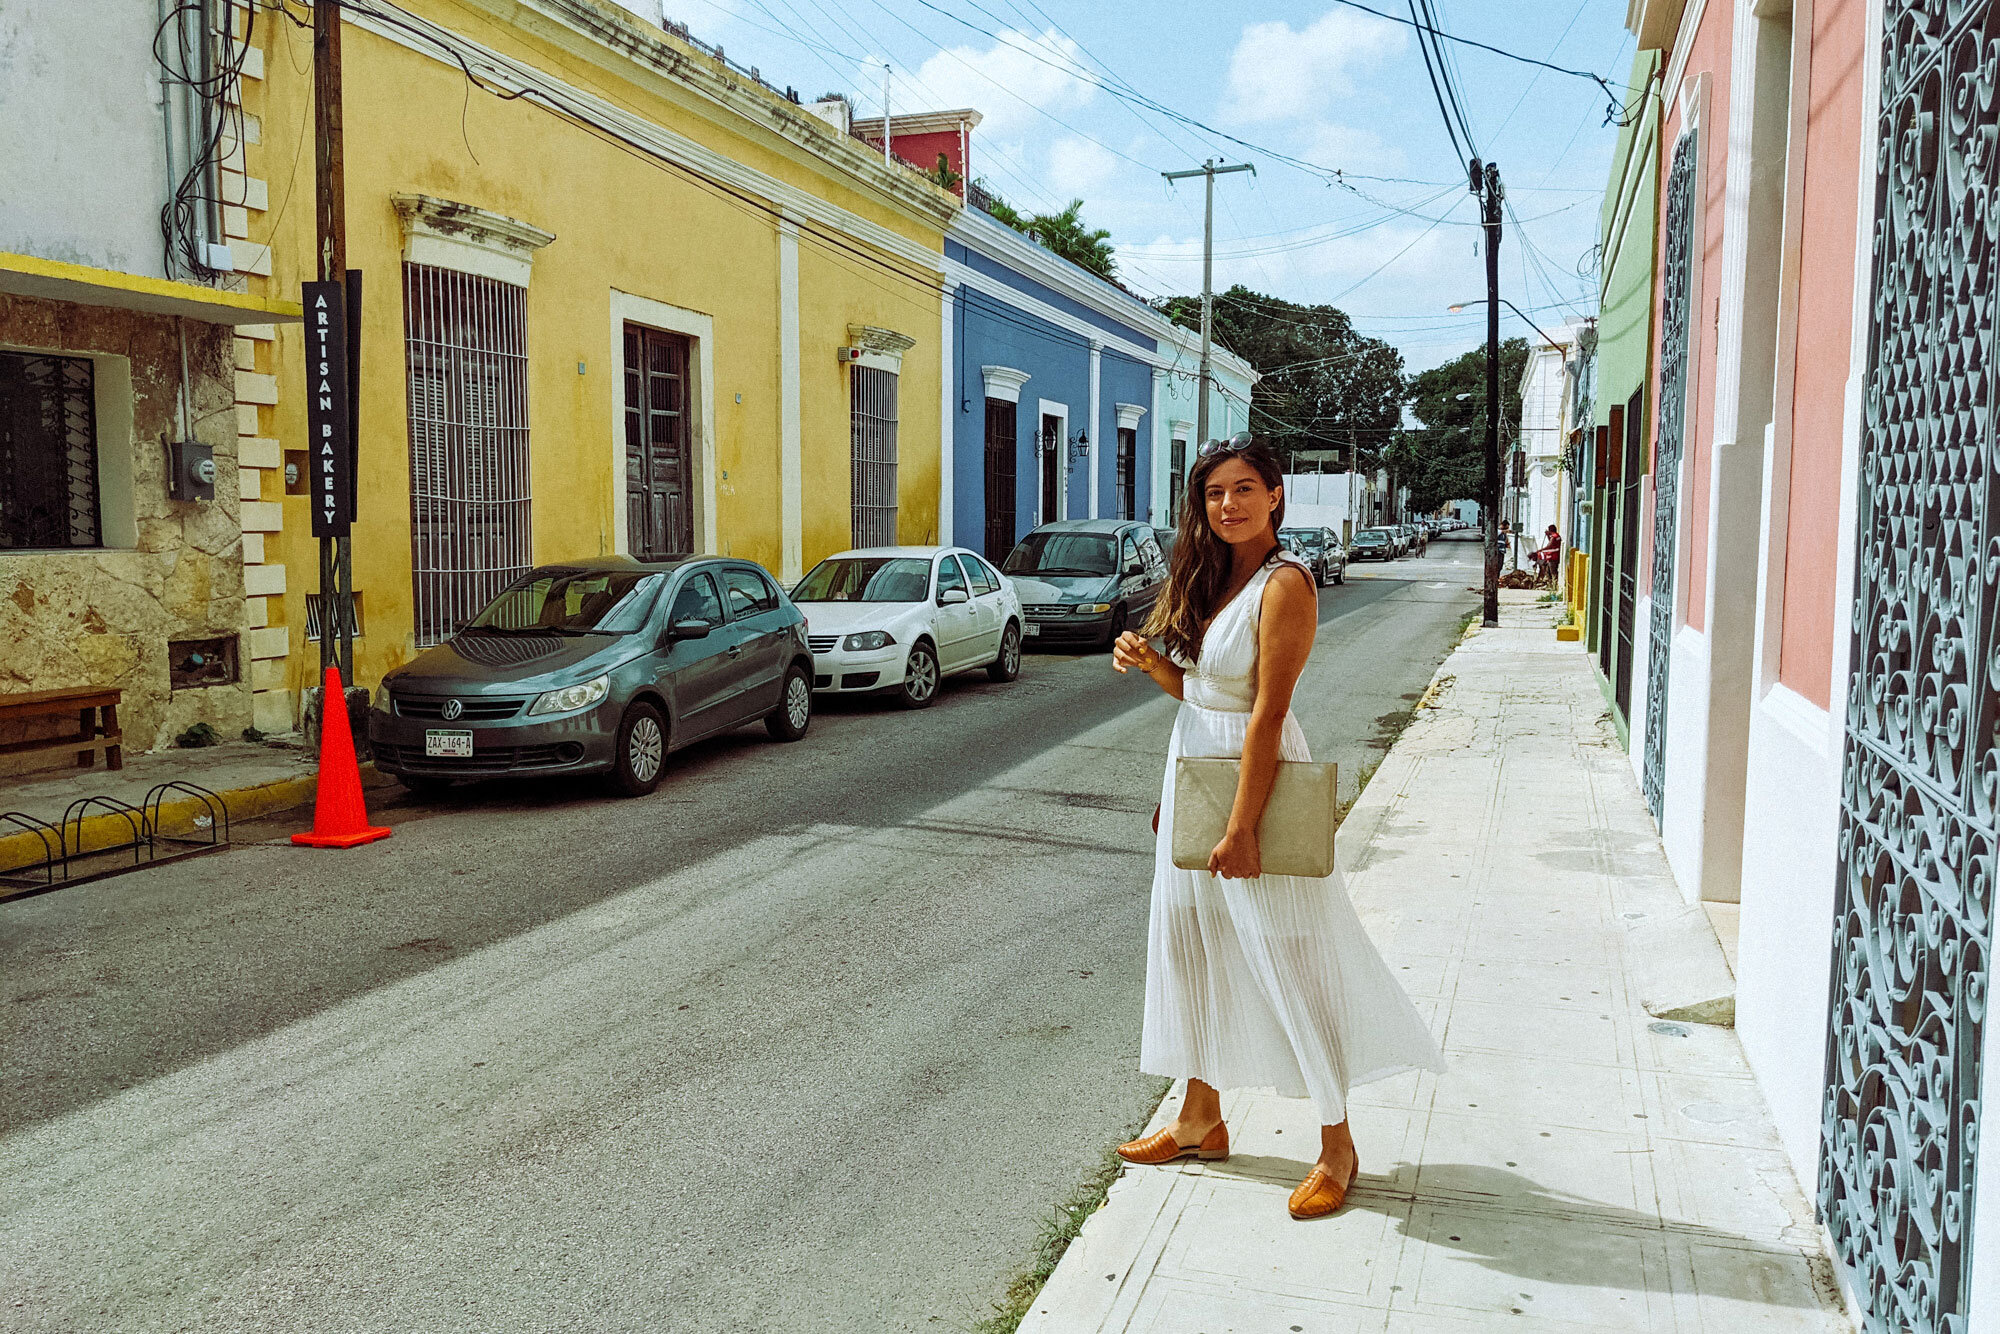 Rachel Off Duty: The Top Things to Do in Merida, Mexico